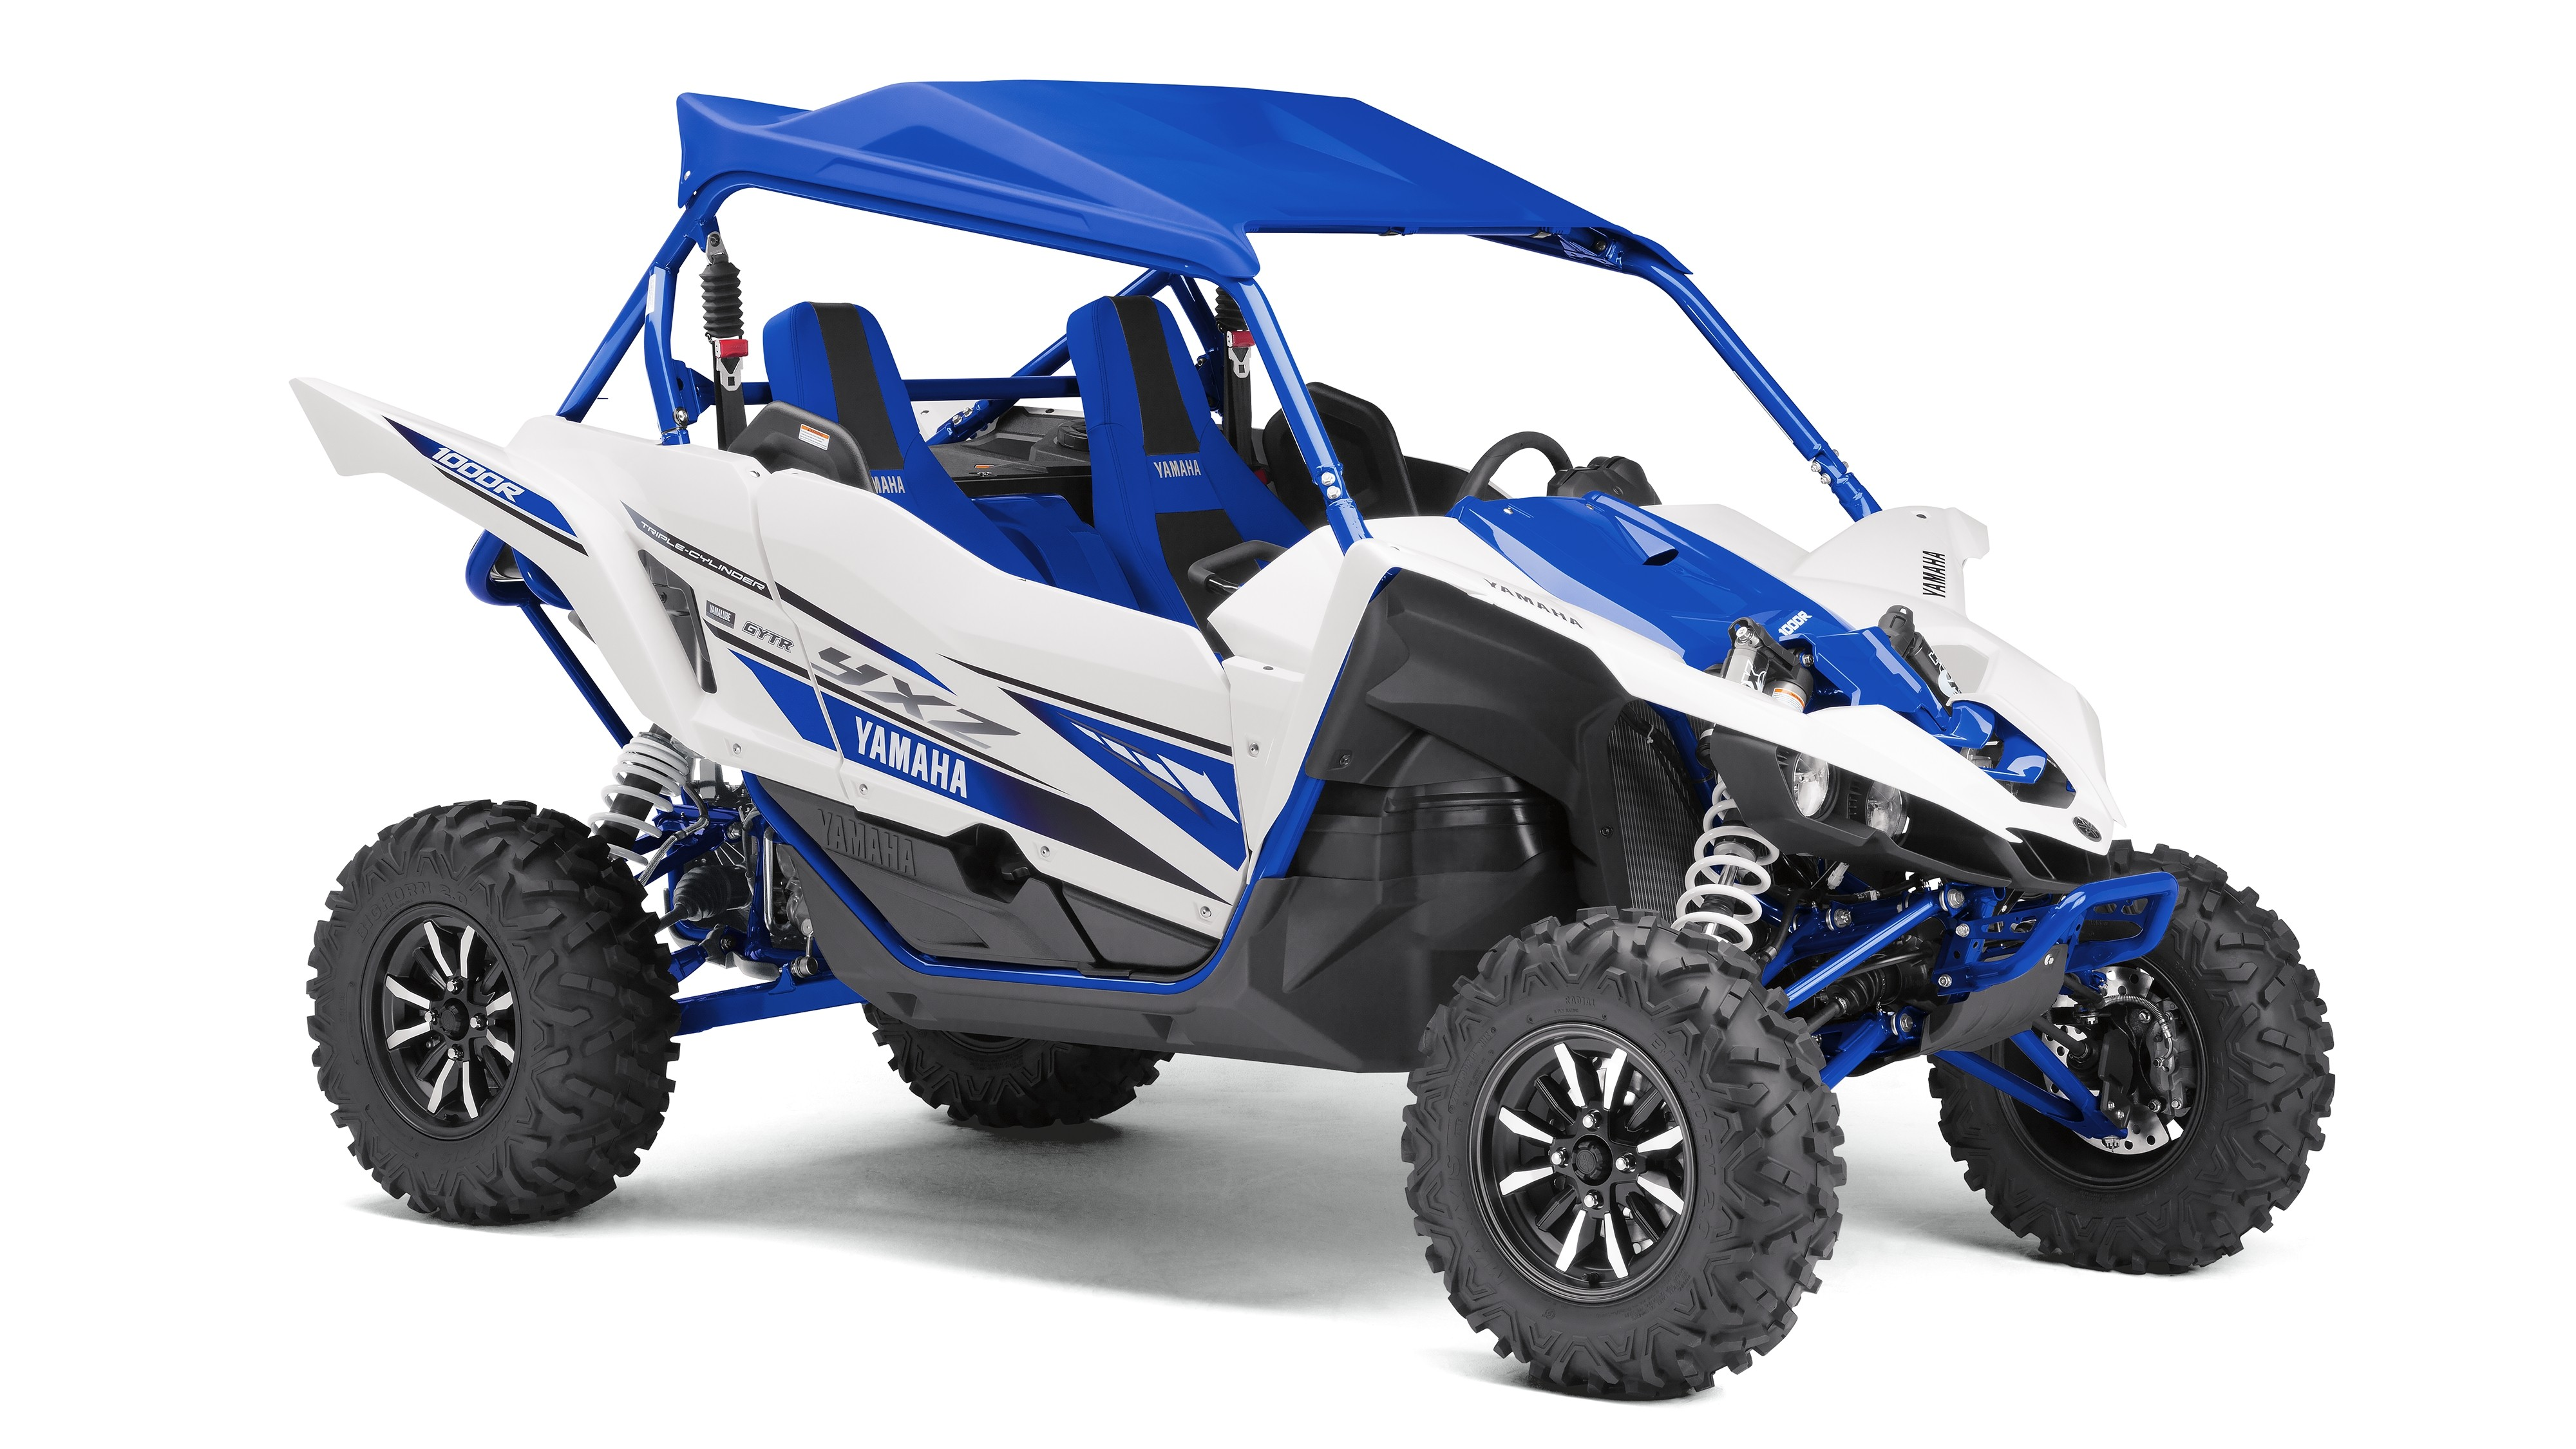 2017 yamaha yxz1000r ss brings f1 technology to the sxs